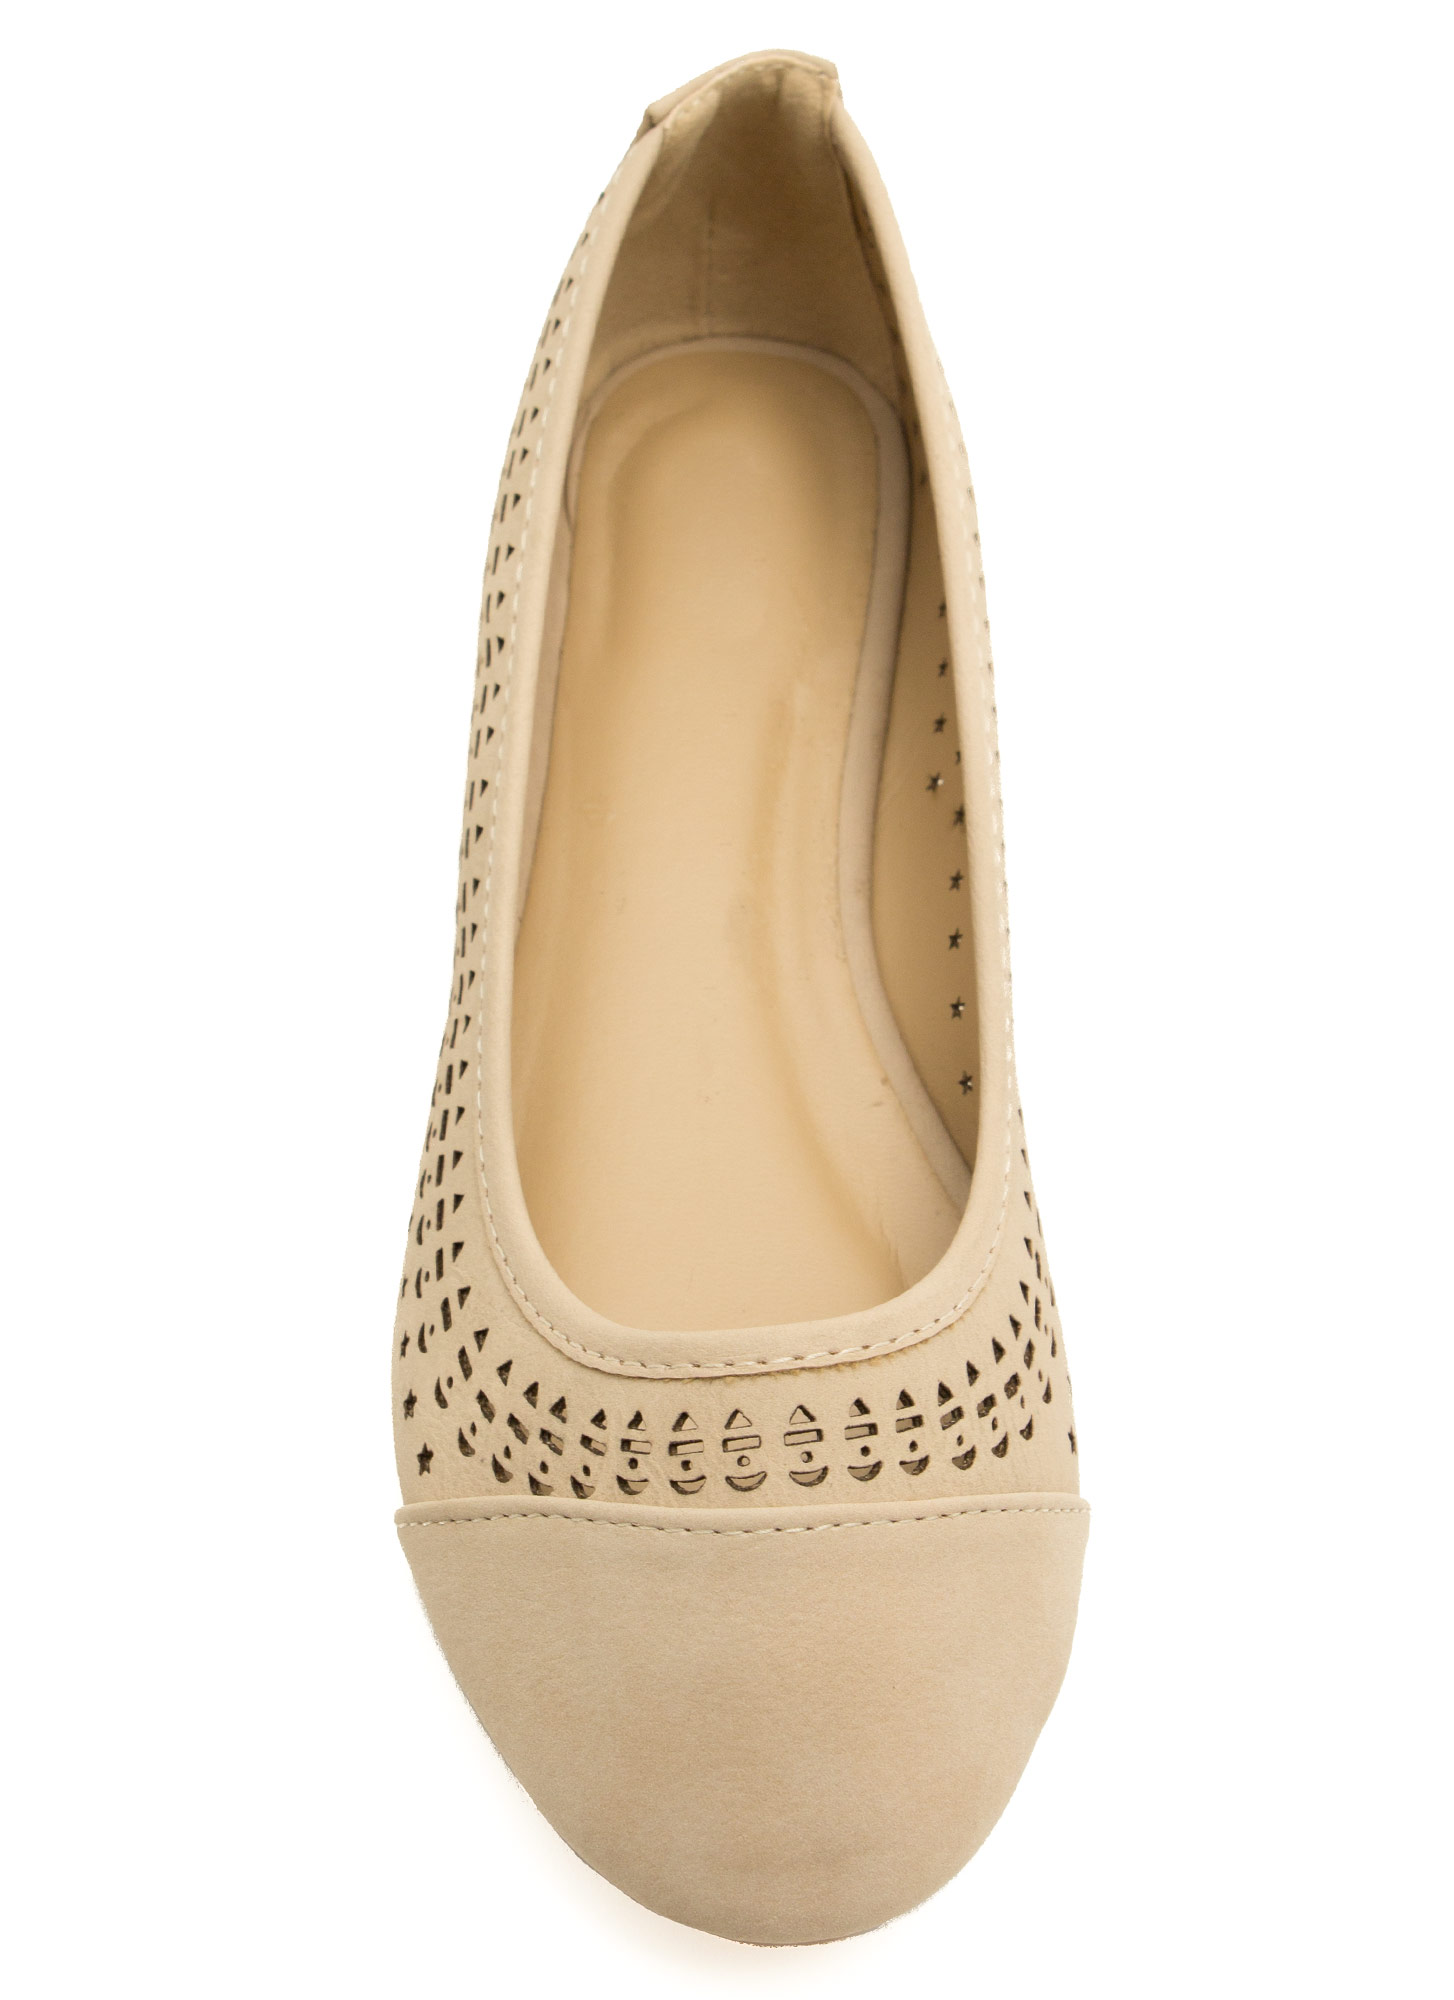 Get Into Shapes Laser Cut Ballet Flats NATURAL